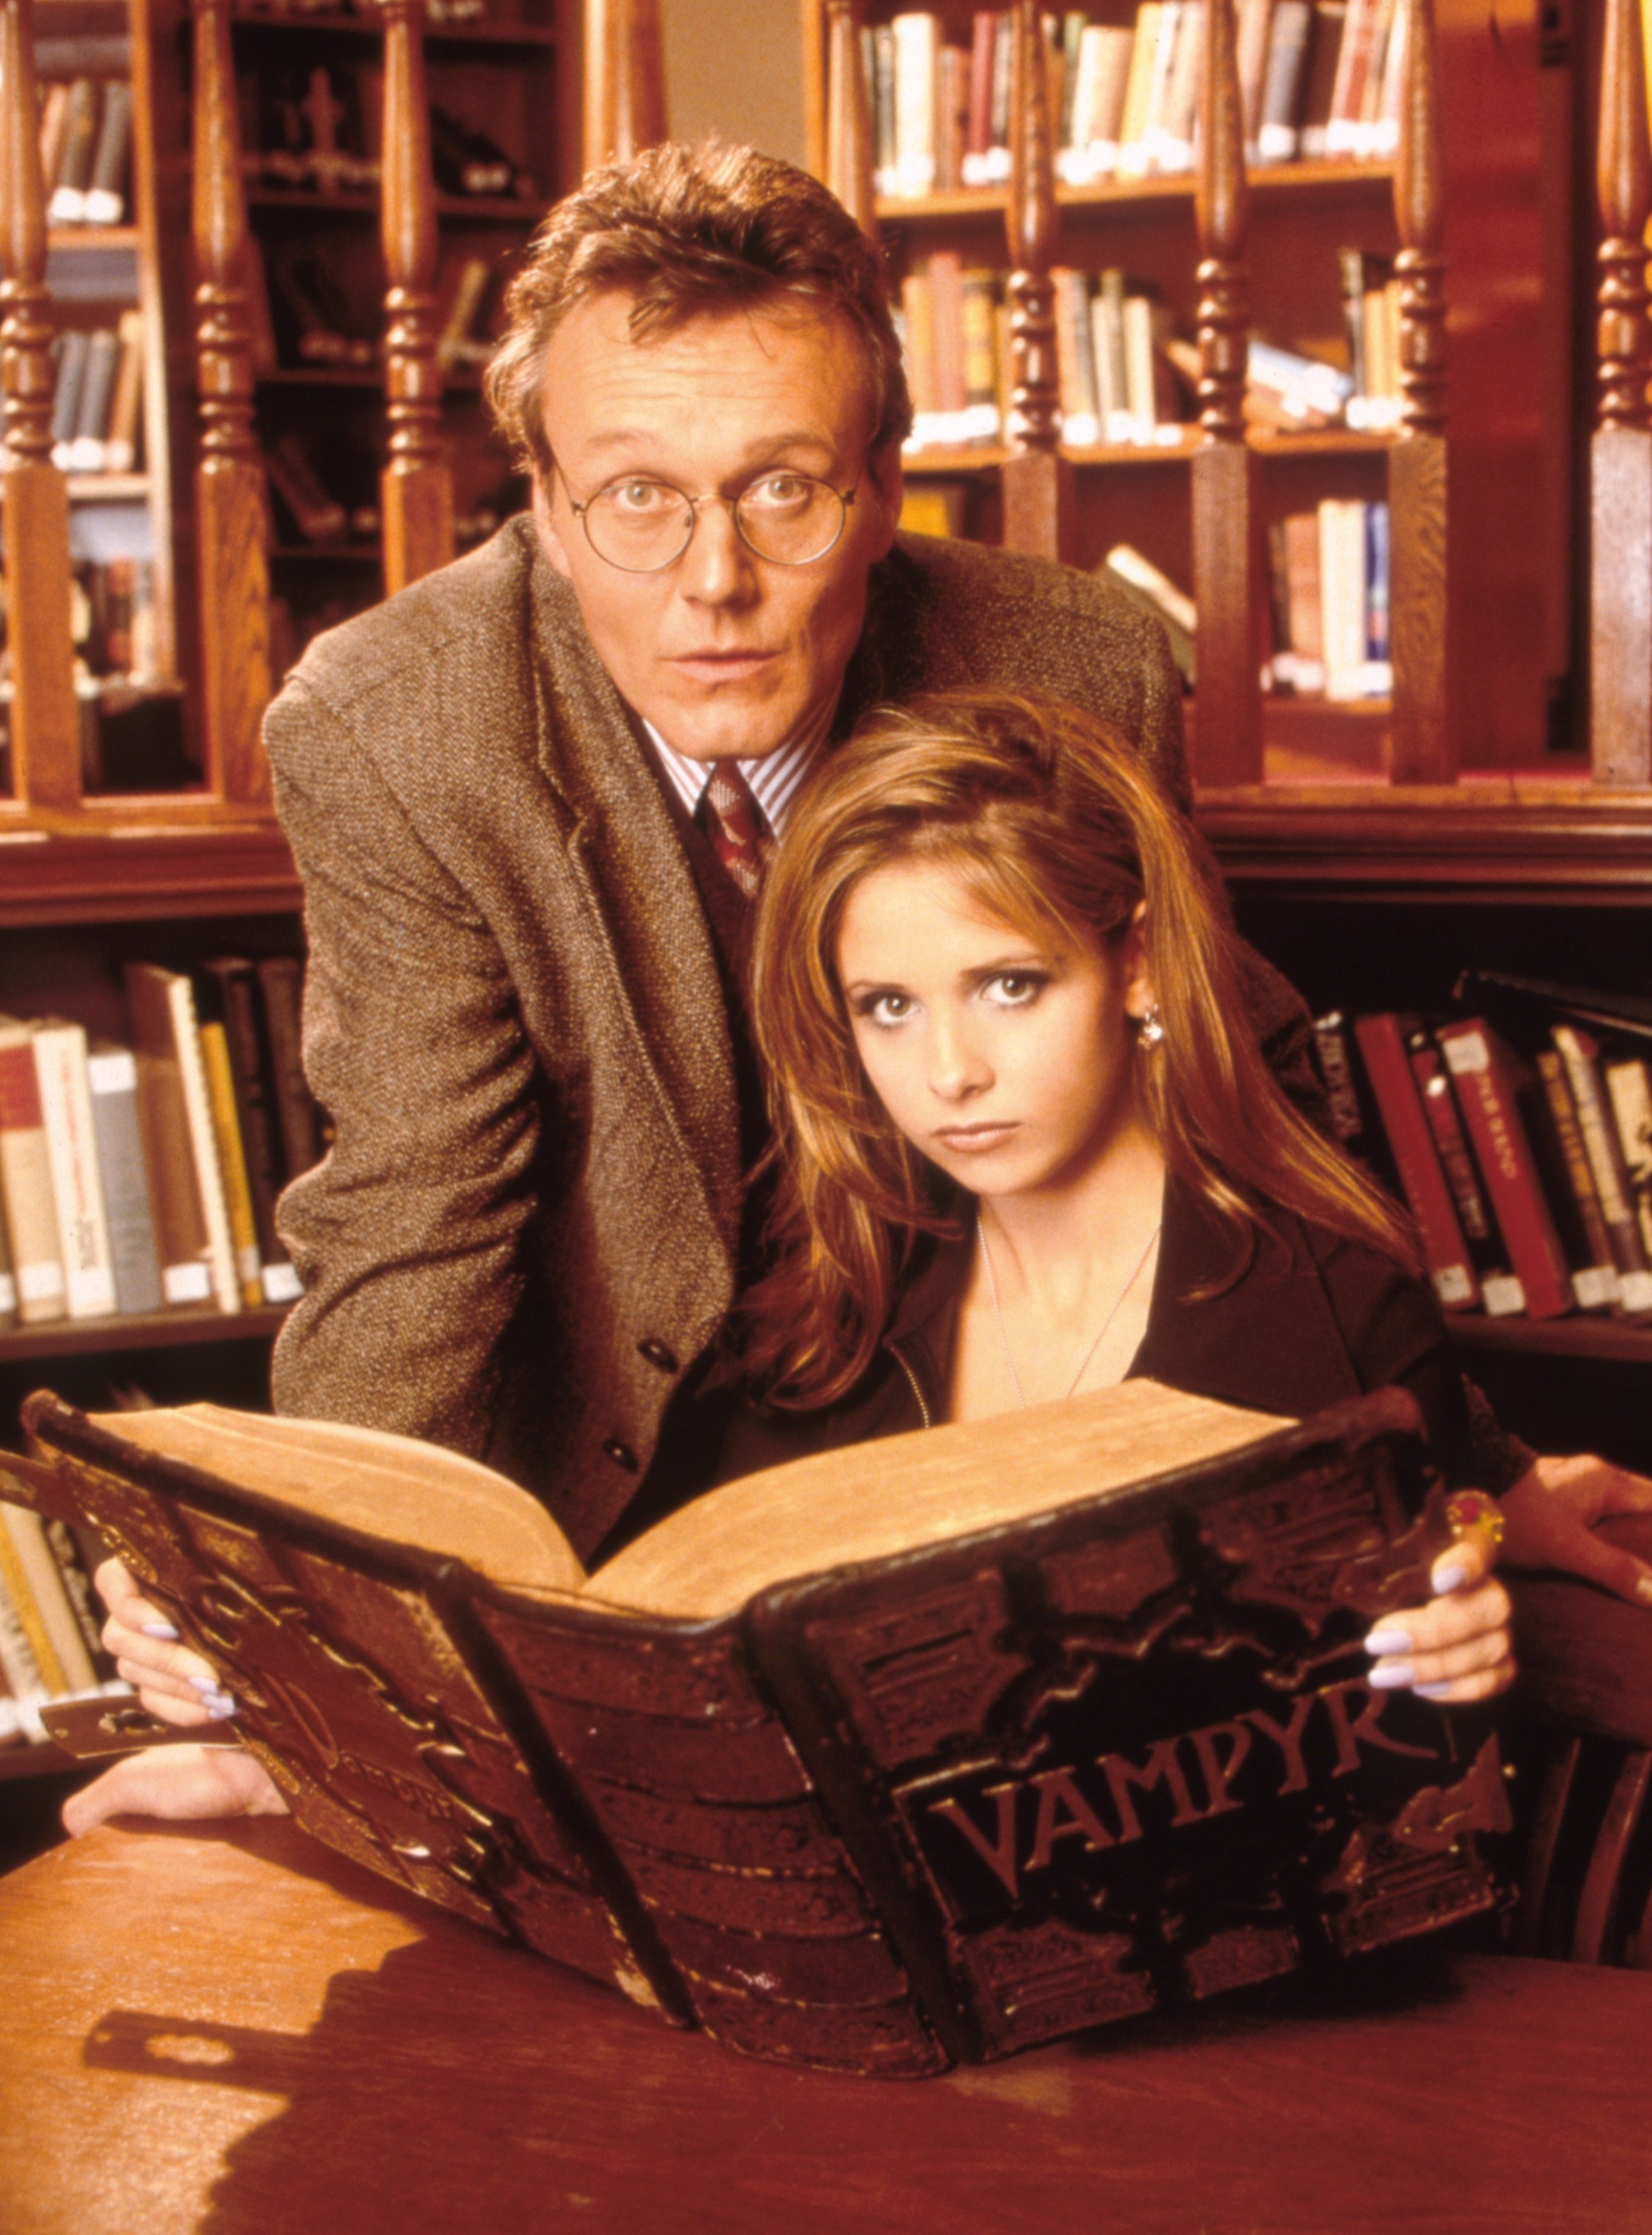 Giles standing next to Buffy as she holds open a book with the title 'Vampyr'